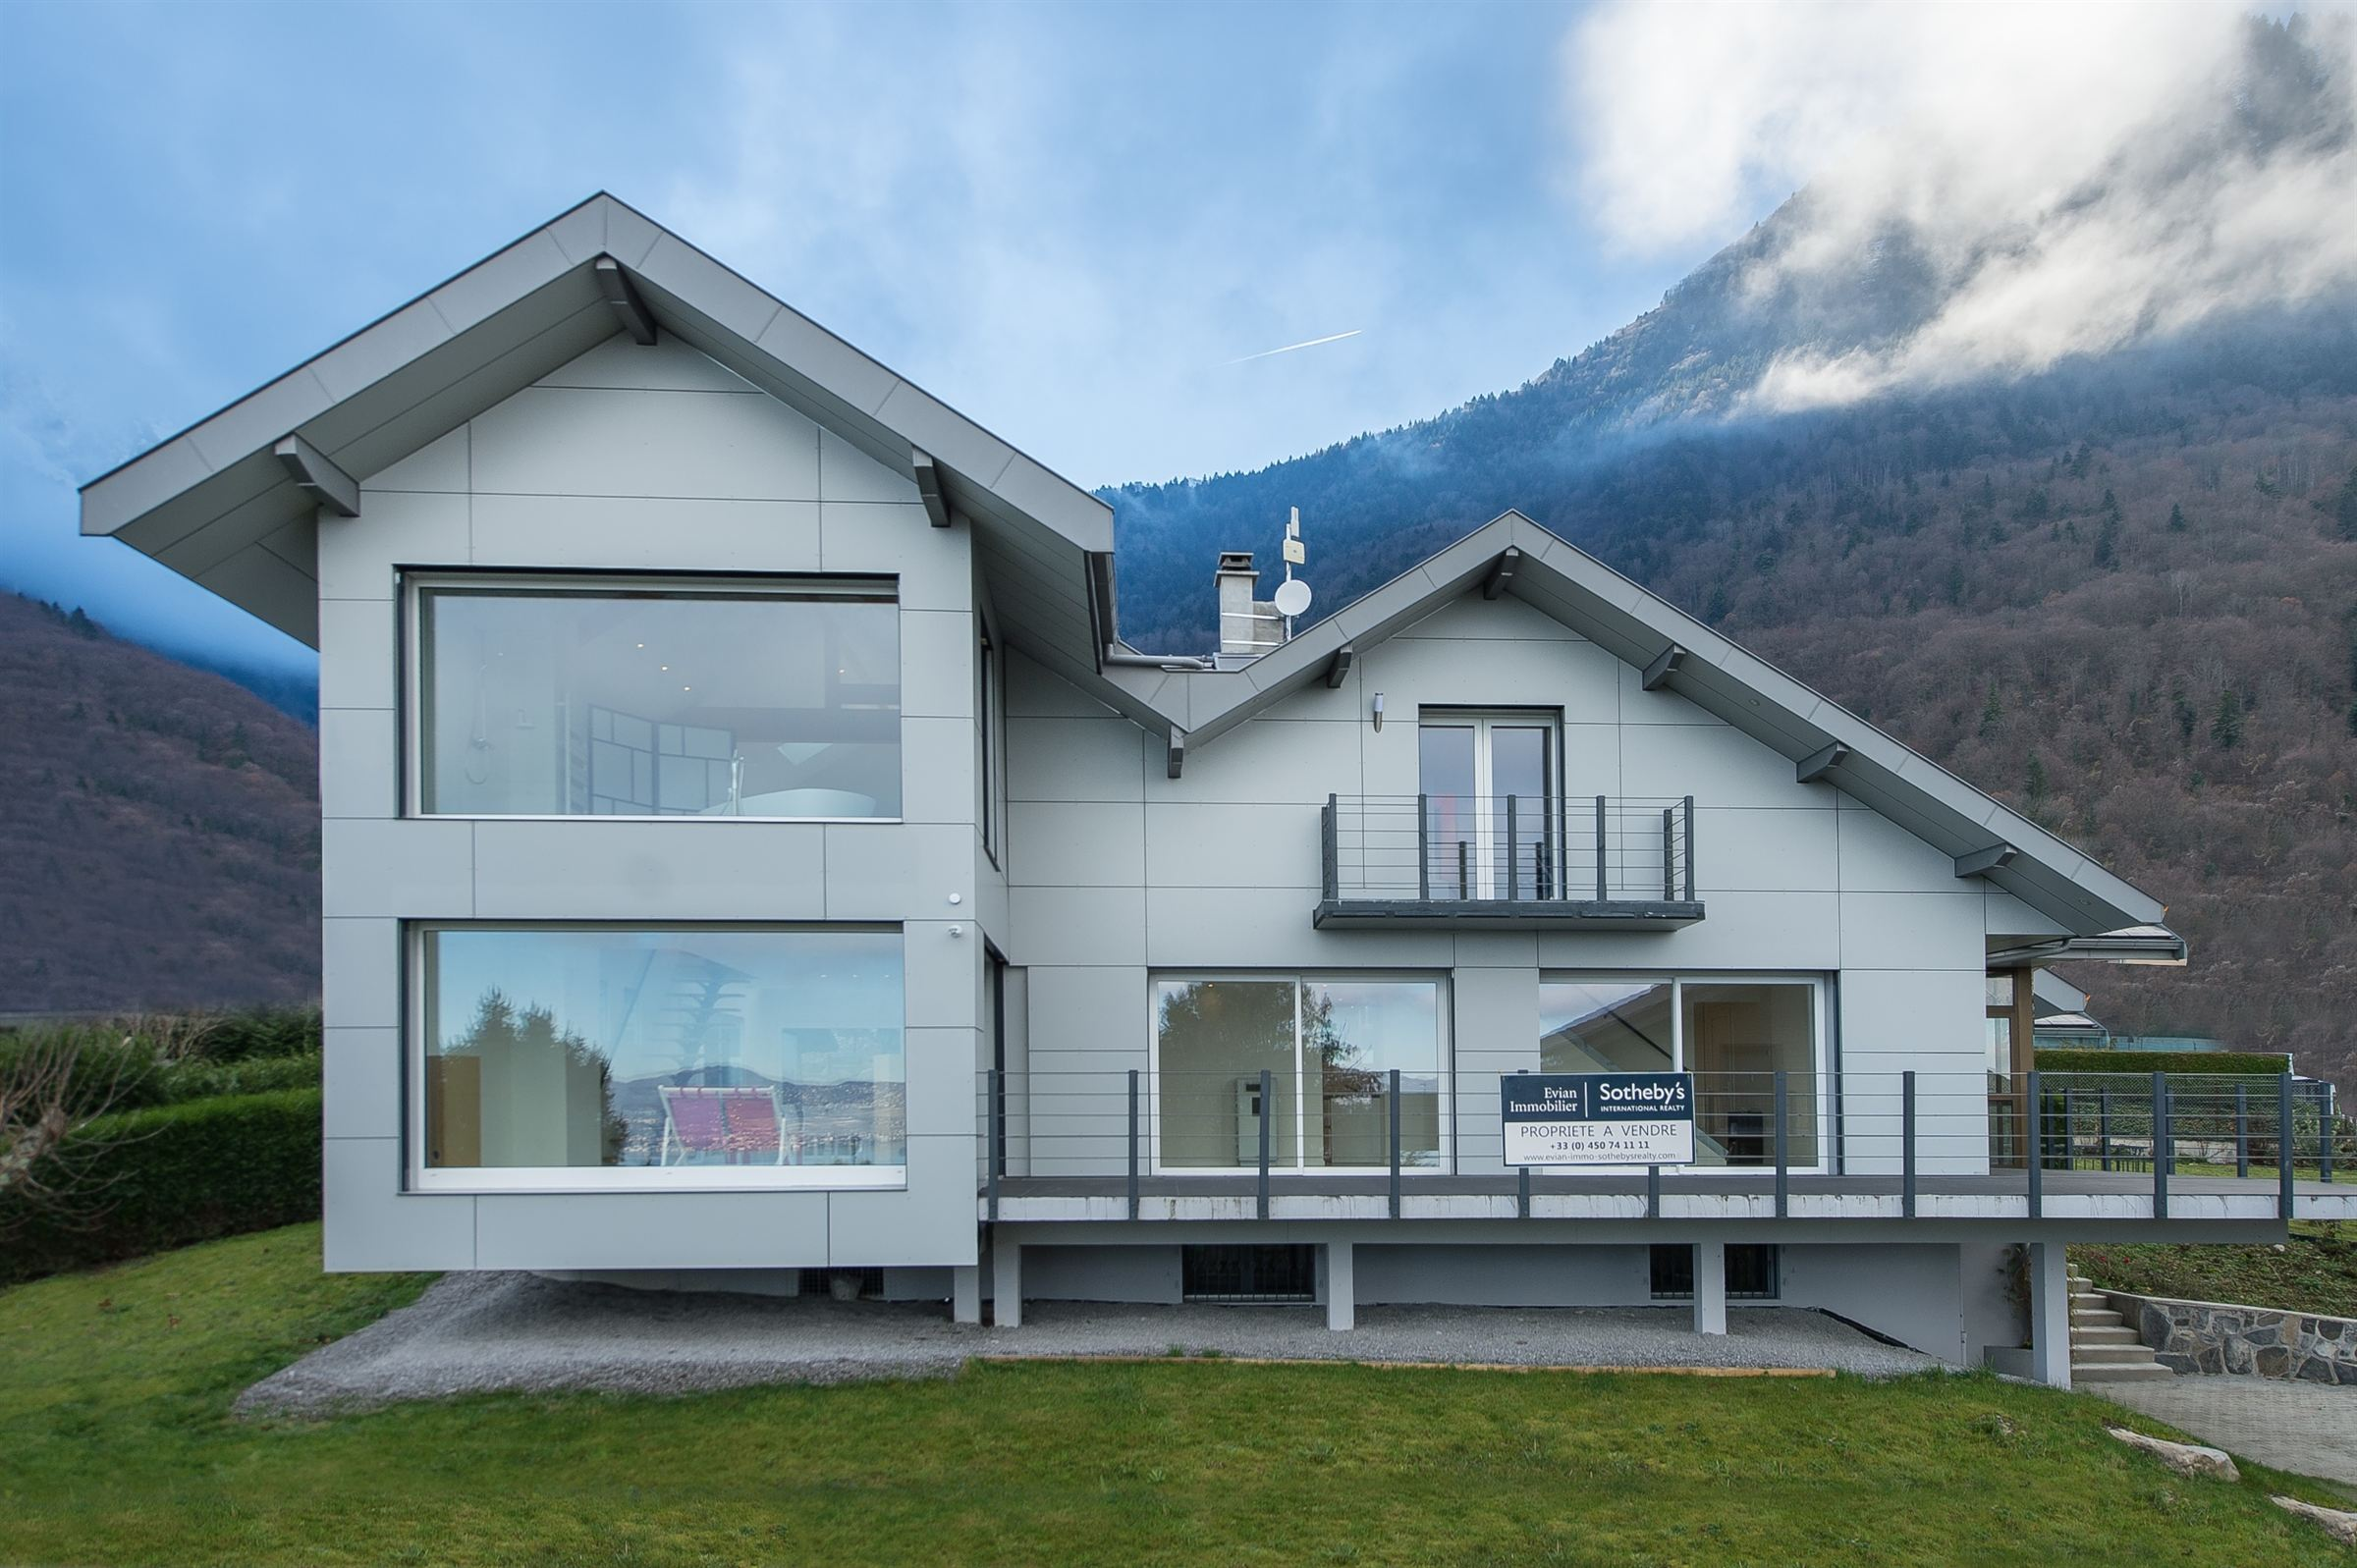 Single Family Home for Sale at ST GINGOLPH VILLA D'ARCHITECTE Other Rhone-Alpes, Rhone-Alpes, 74500 France